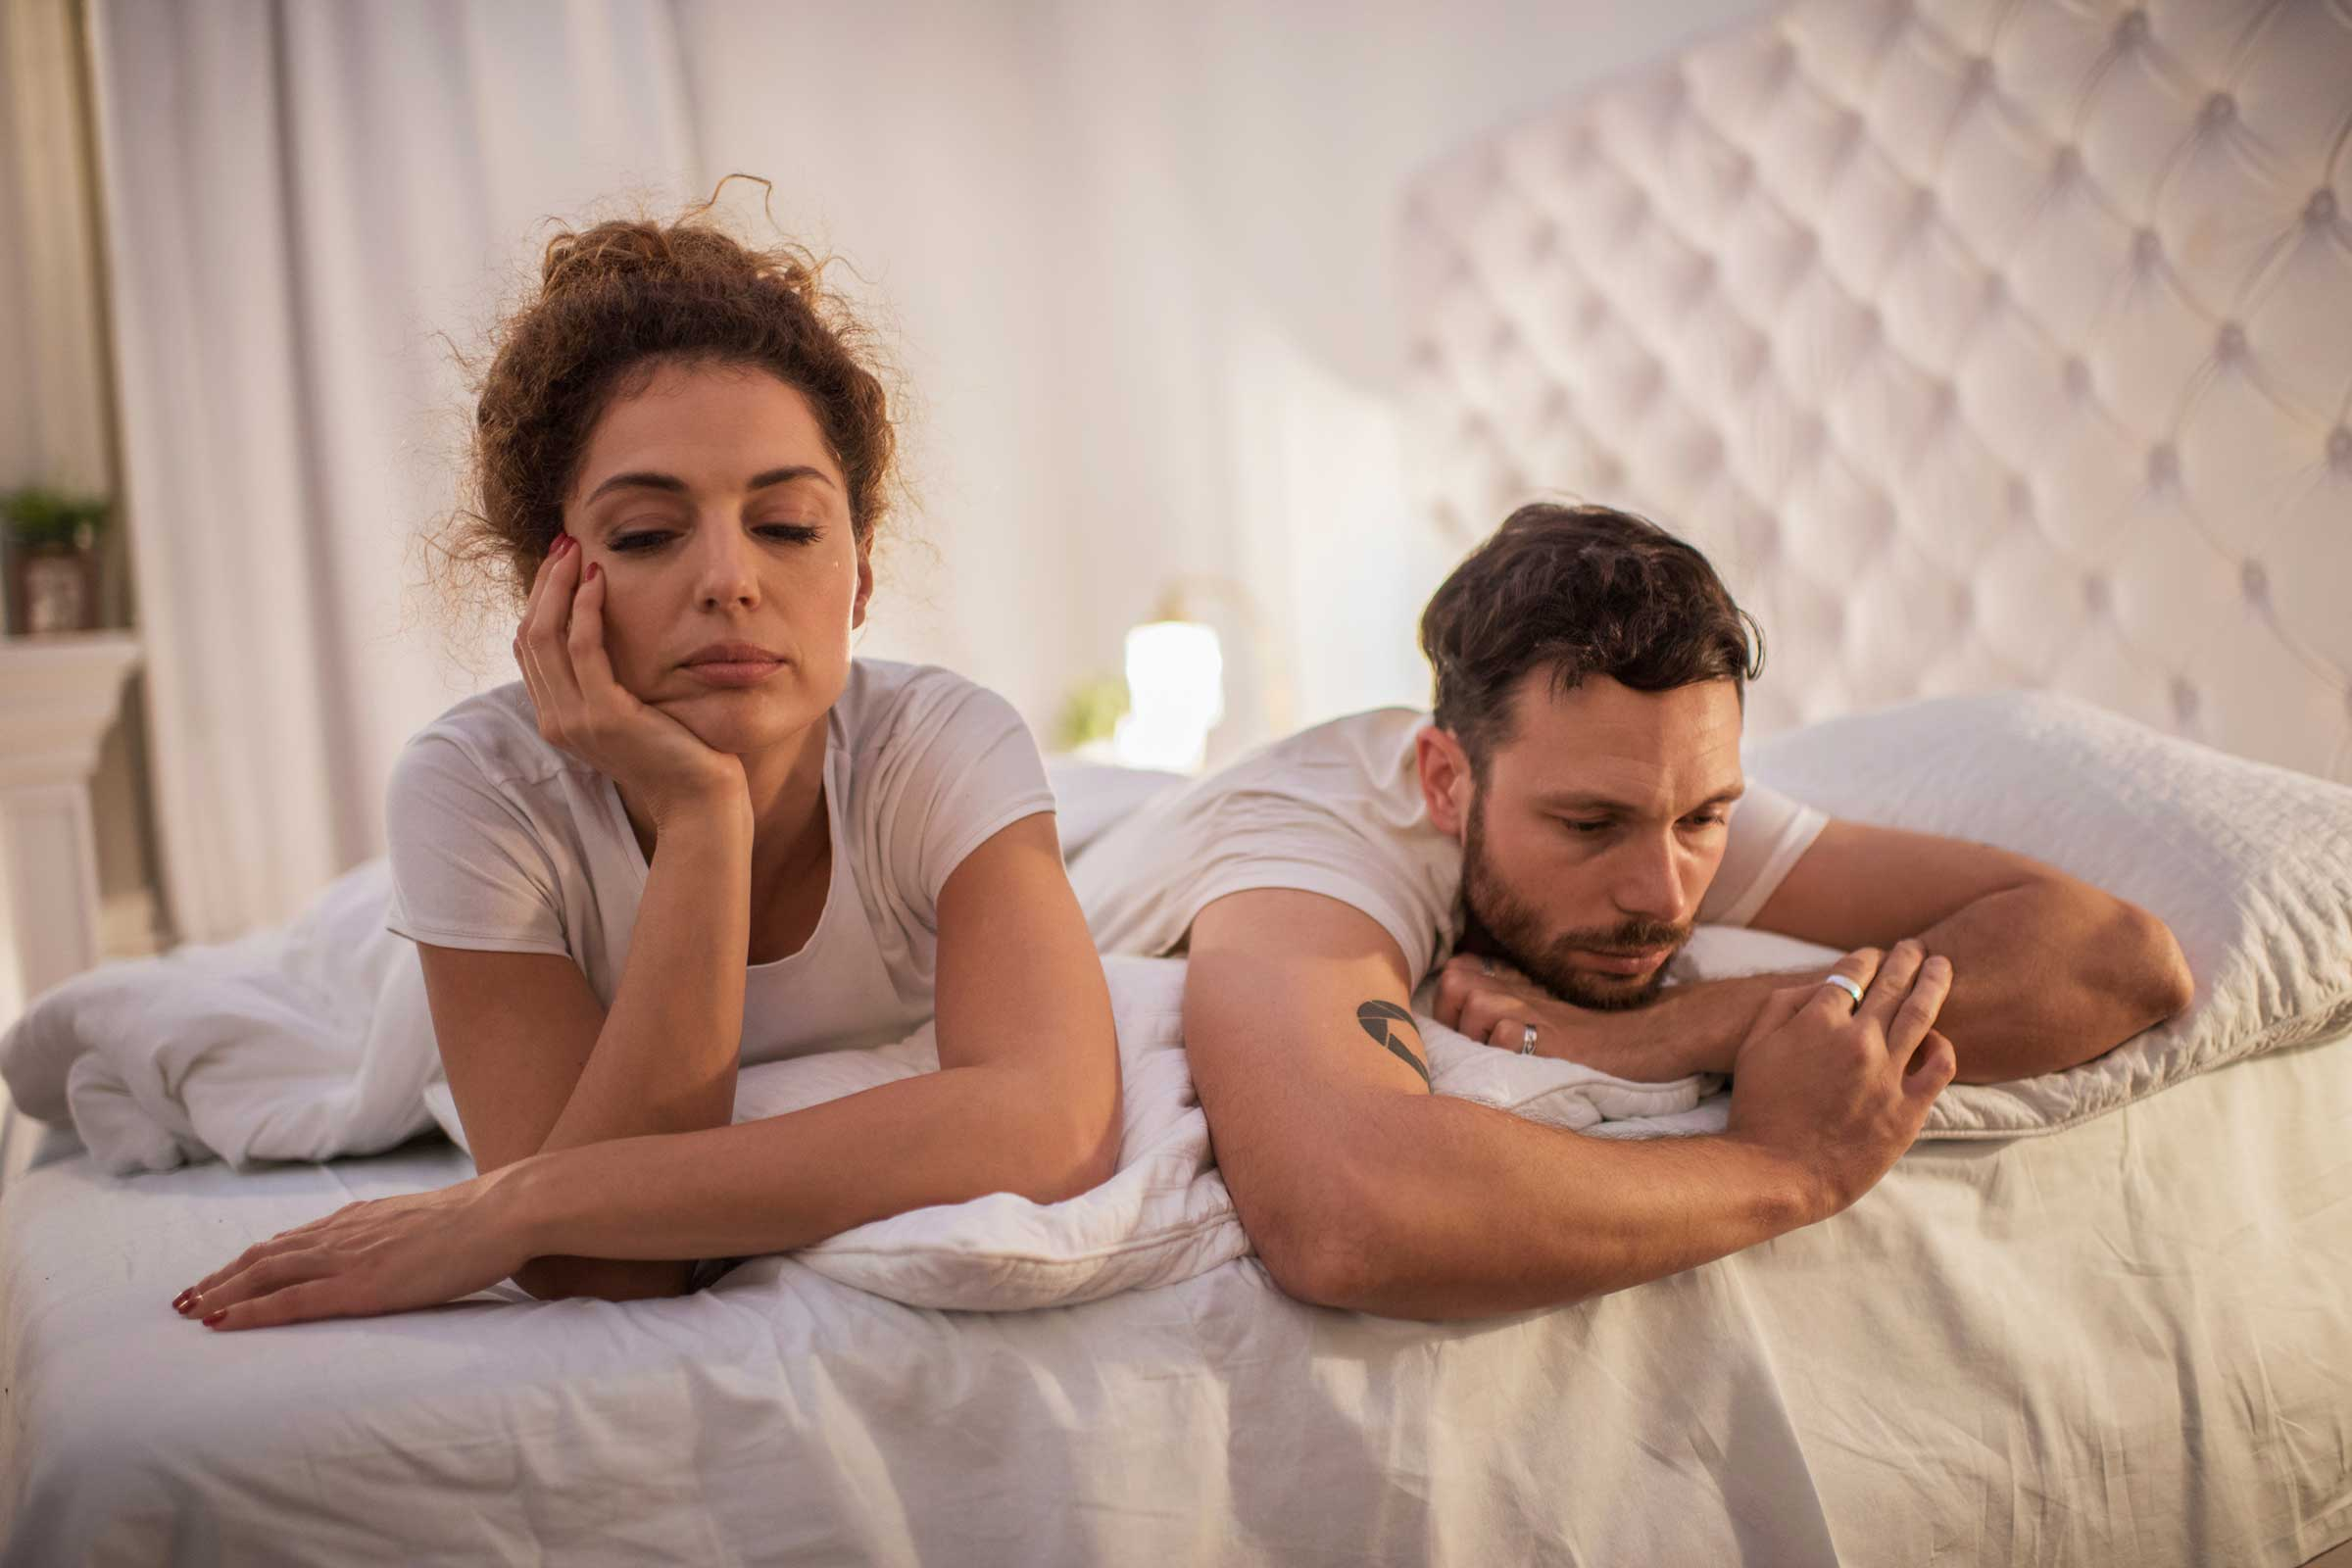 How To Recover After Cheating - Relationship Hero